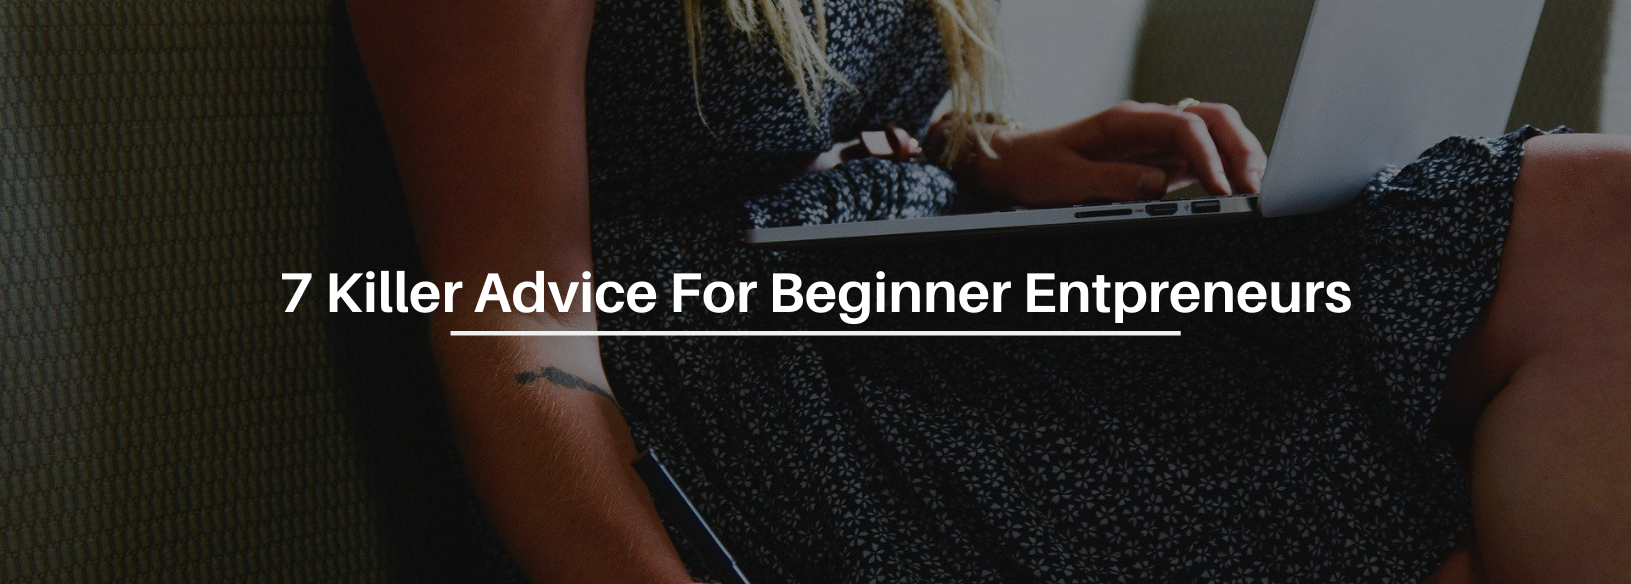 7 Killer Advice To Help Beginner Entrepreneurs Become Successful